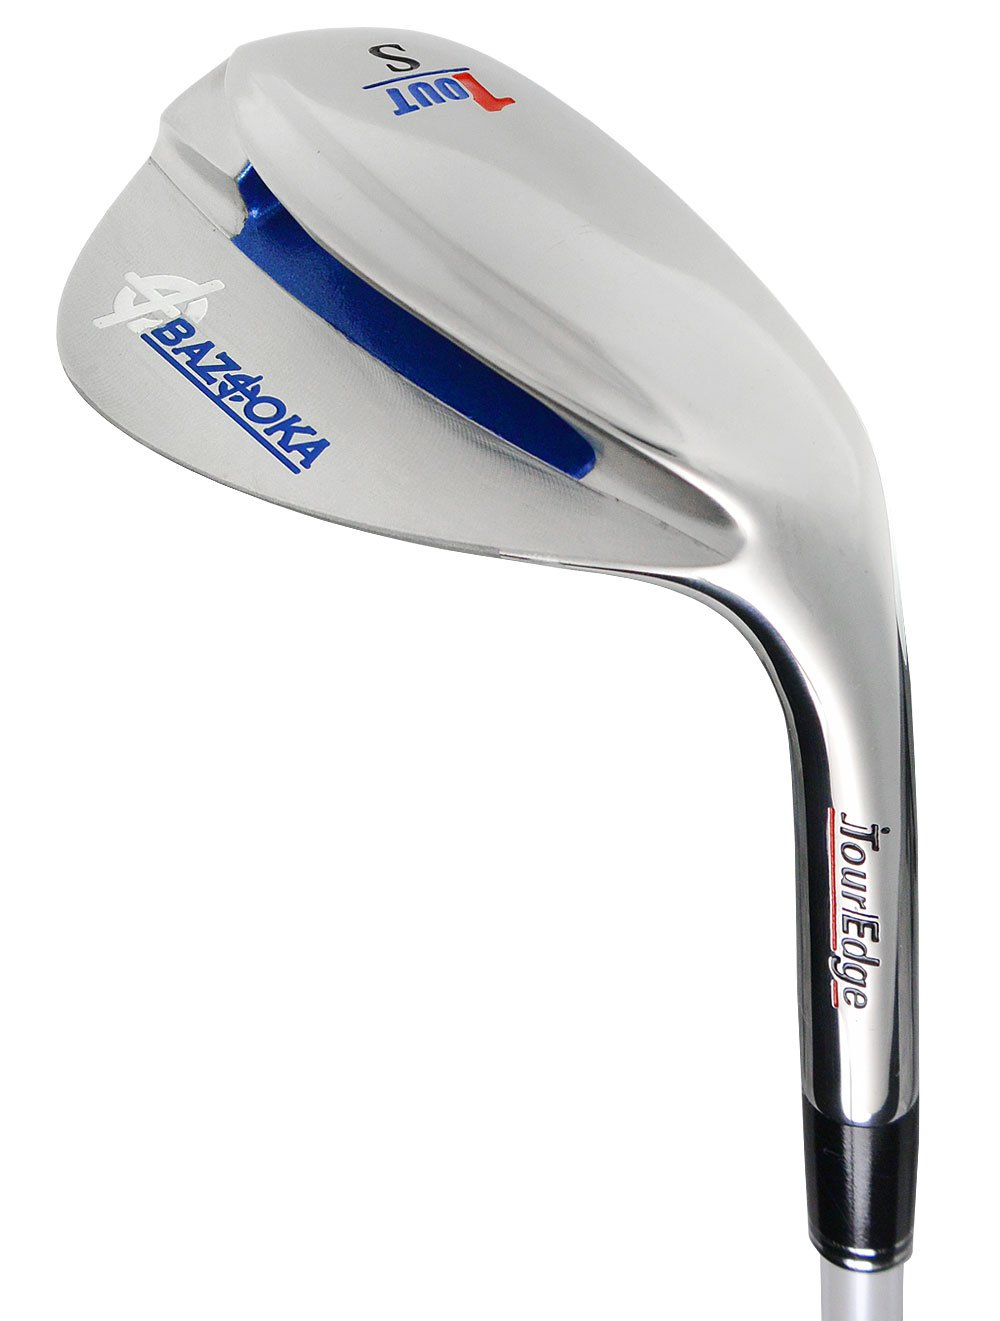 Tour Edge Men's Bazooka One Out Wedge (Right Hand, Graphite, A-Flex, SW Iron) by Tour Edge